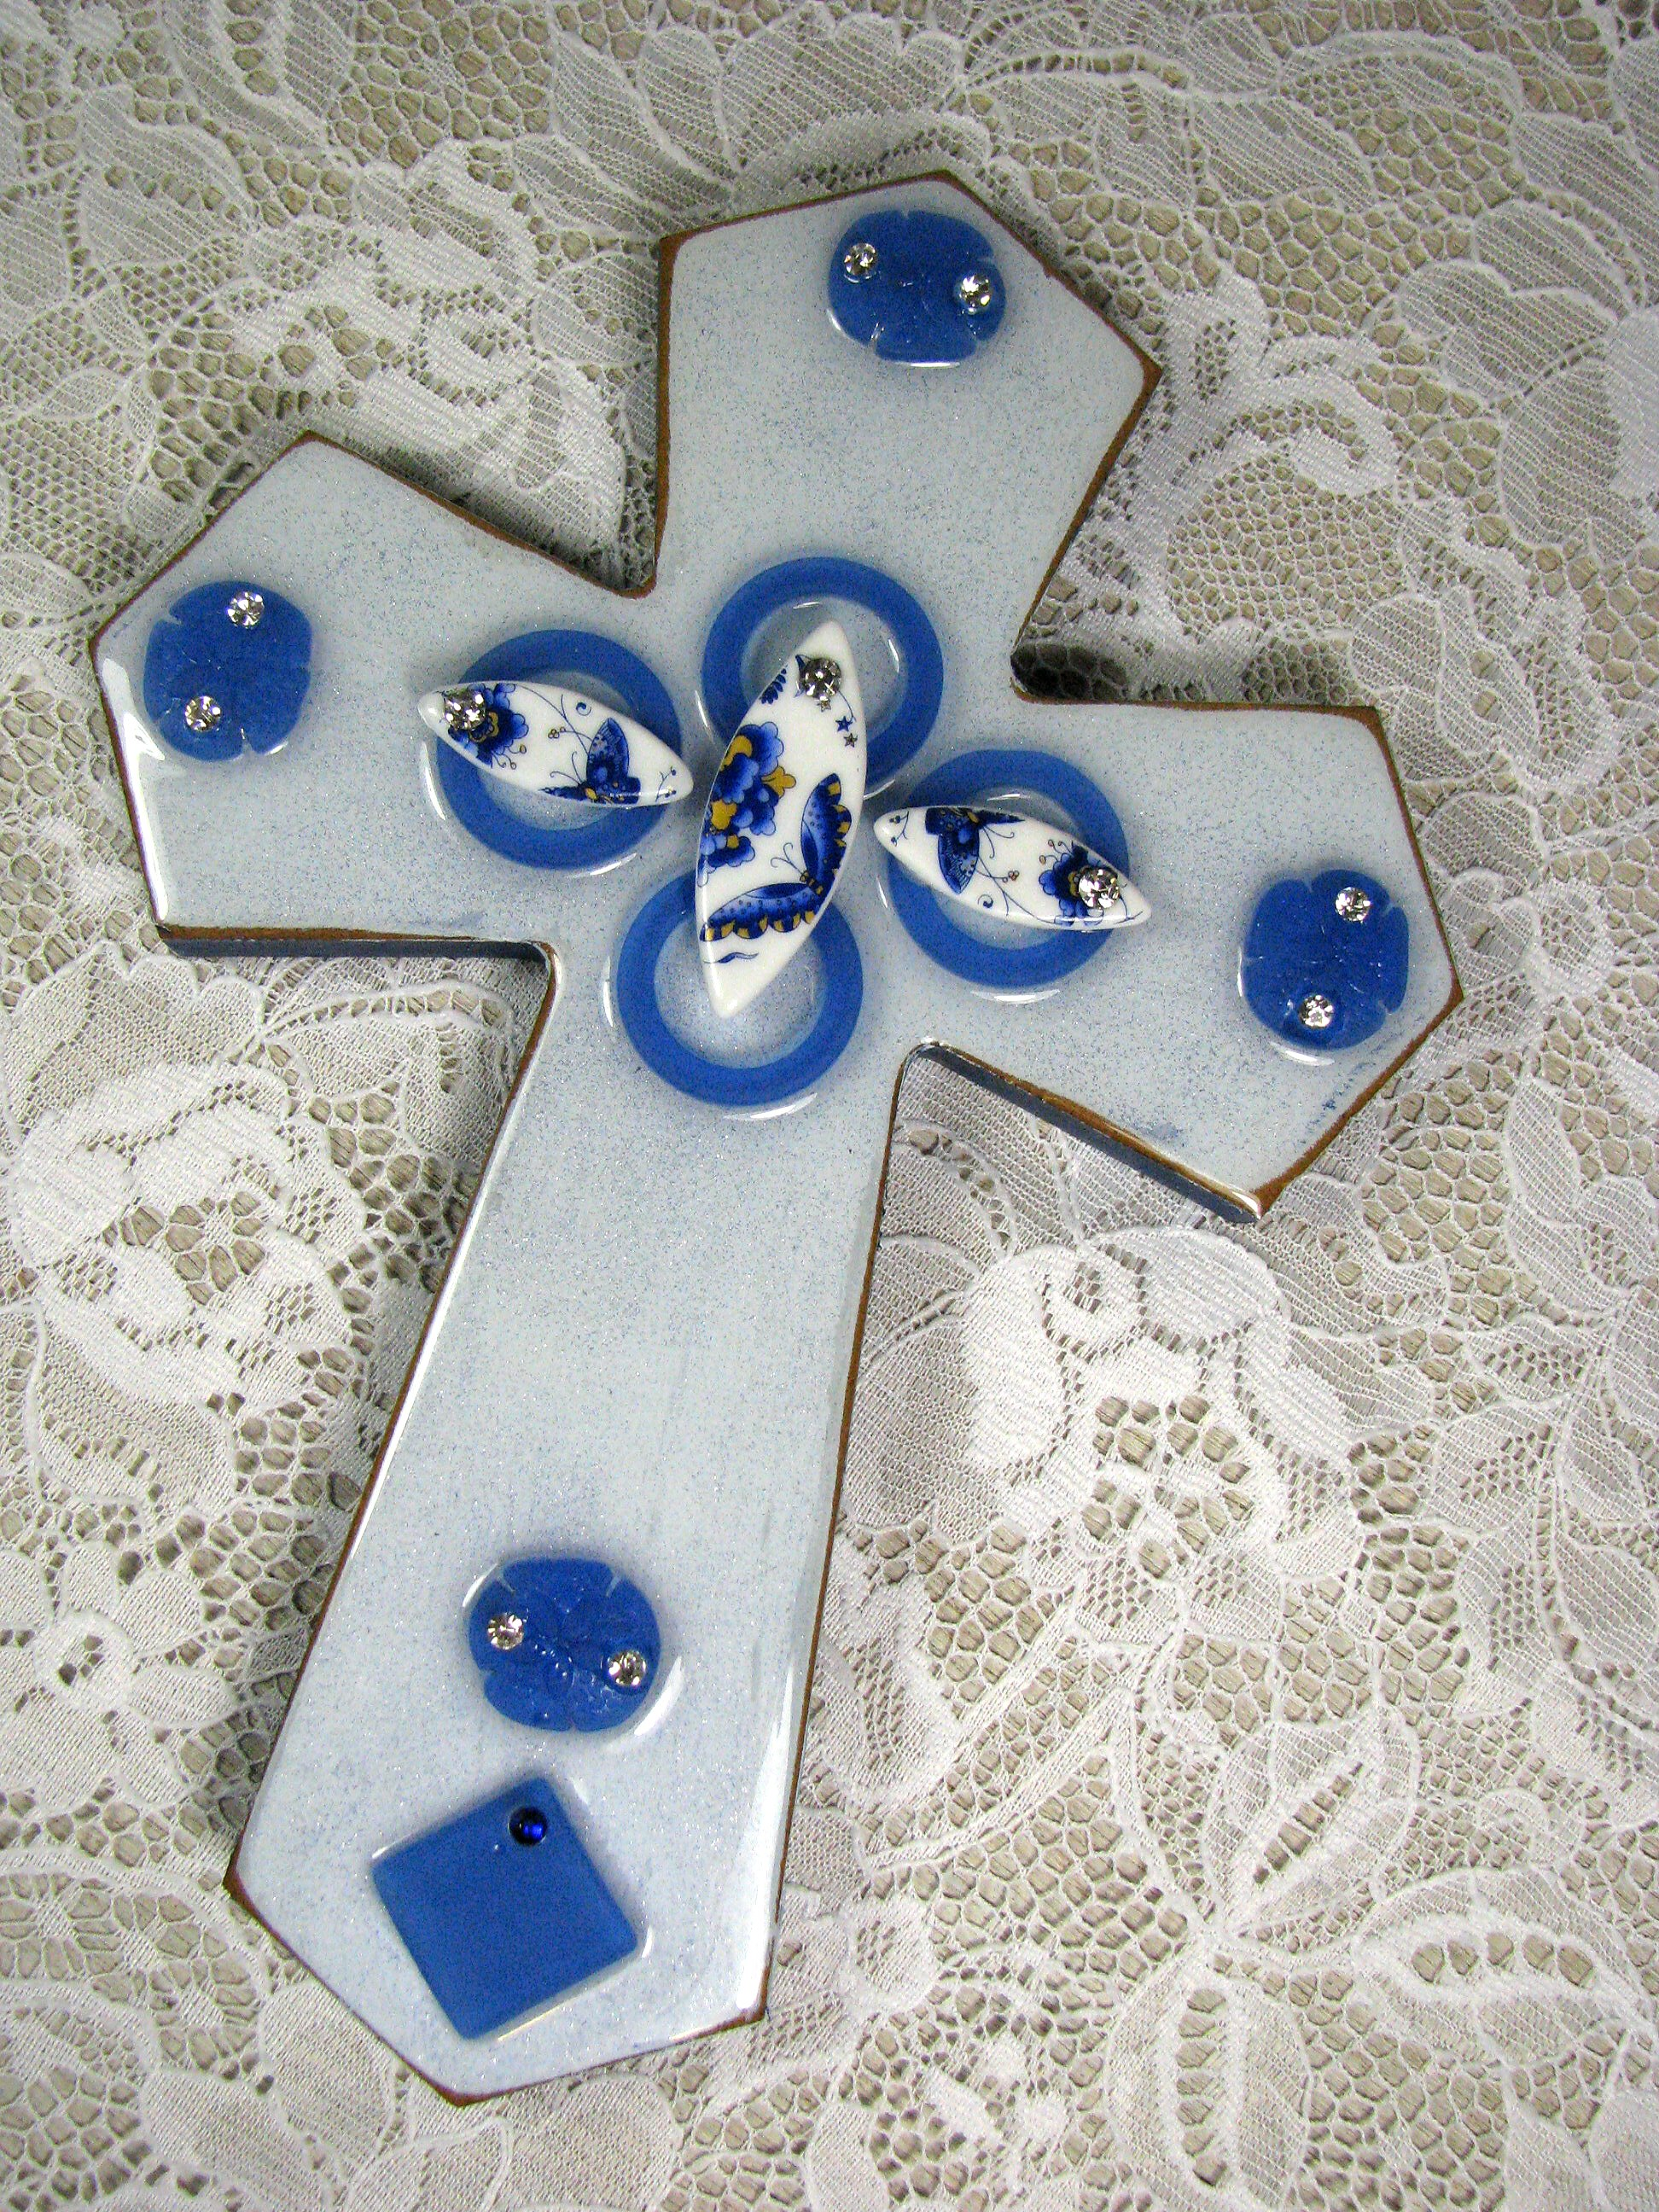 Decorated Cross by Cindy Cima Edwards